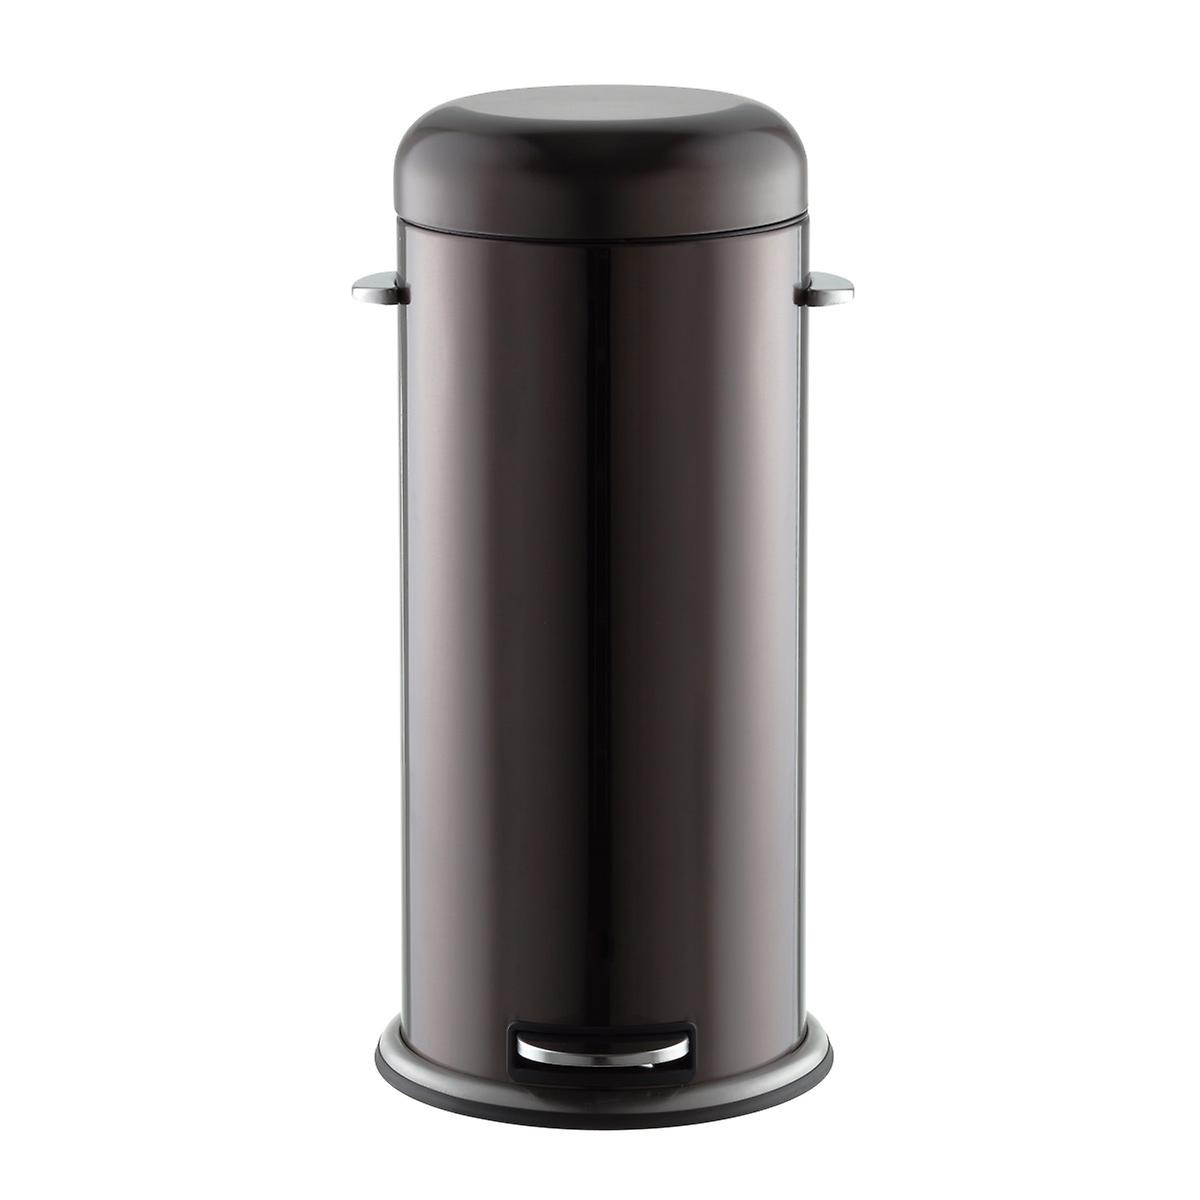 Plastic Trash Cans, Kitchen Garbage Cans & Simplehuman Trash Cans ...